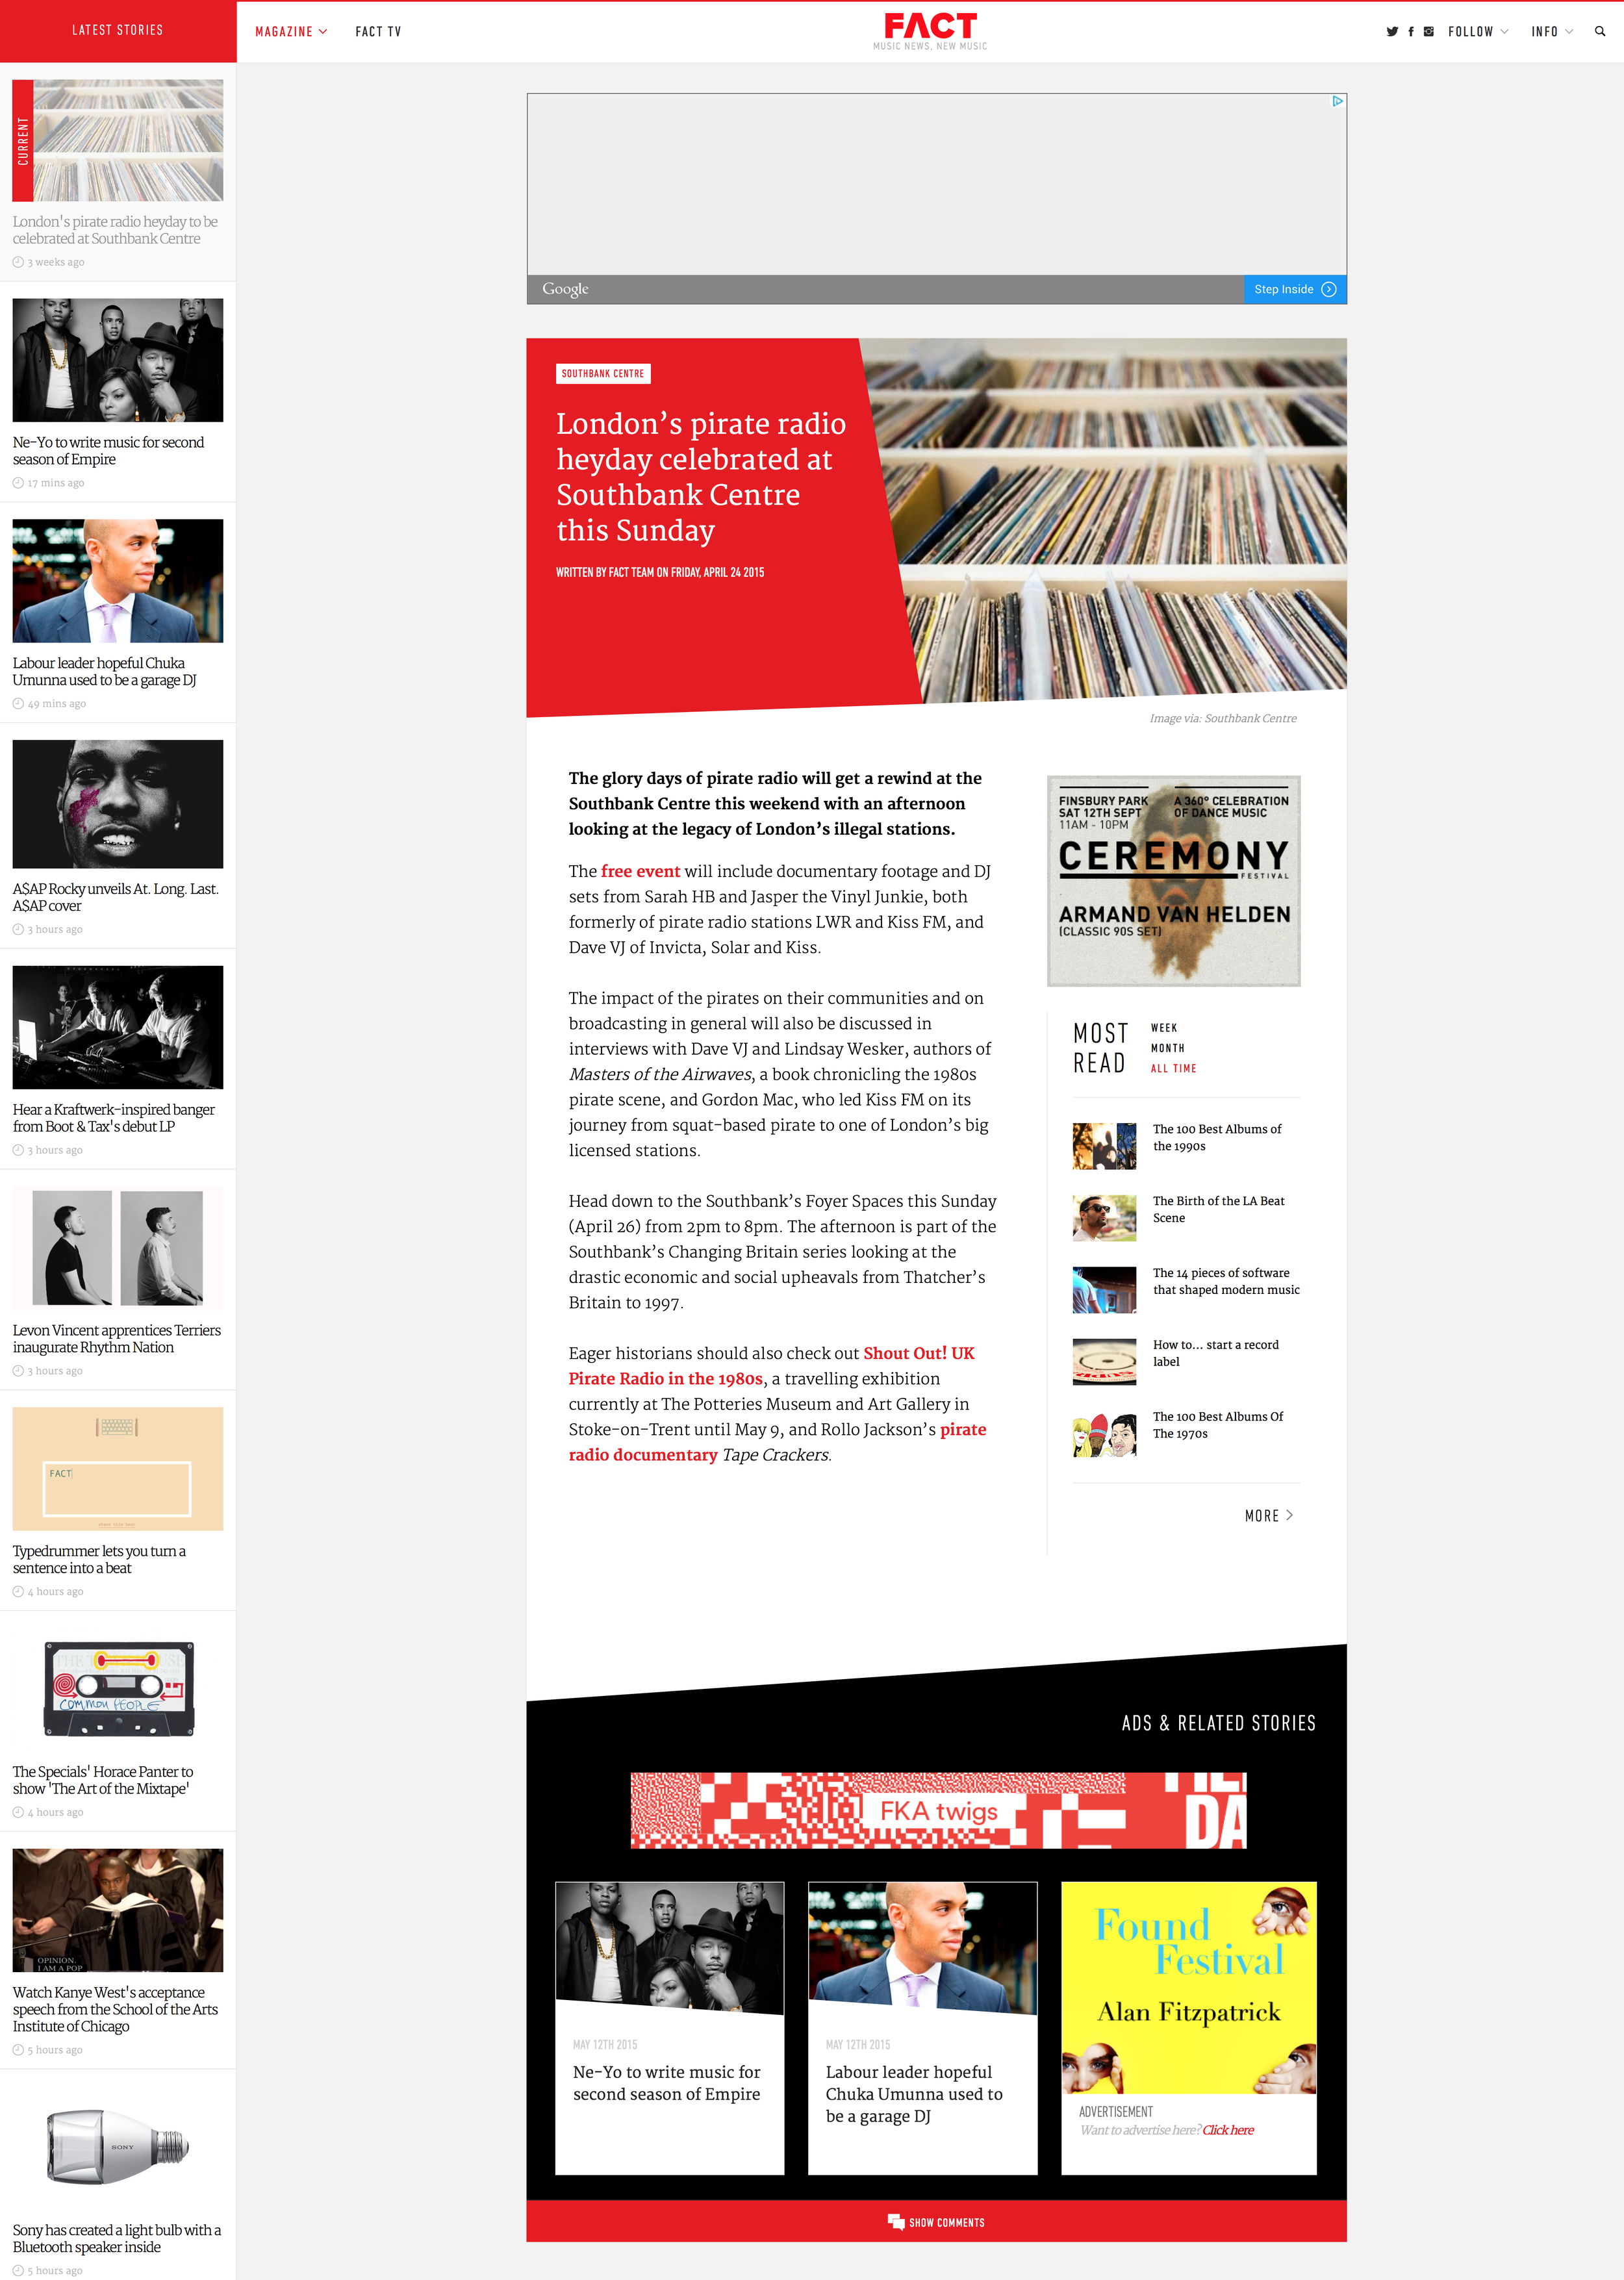 http---www.factmag.com-2015-04-24-london-pirate-radio-heyday-celebrated-at-southbank-centre-(20150512).jpg